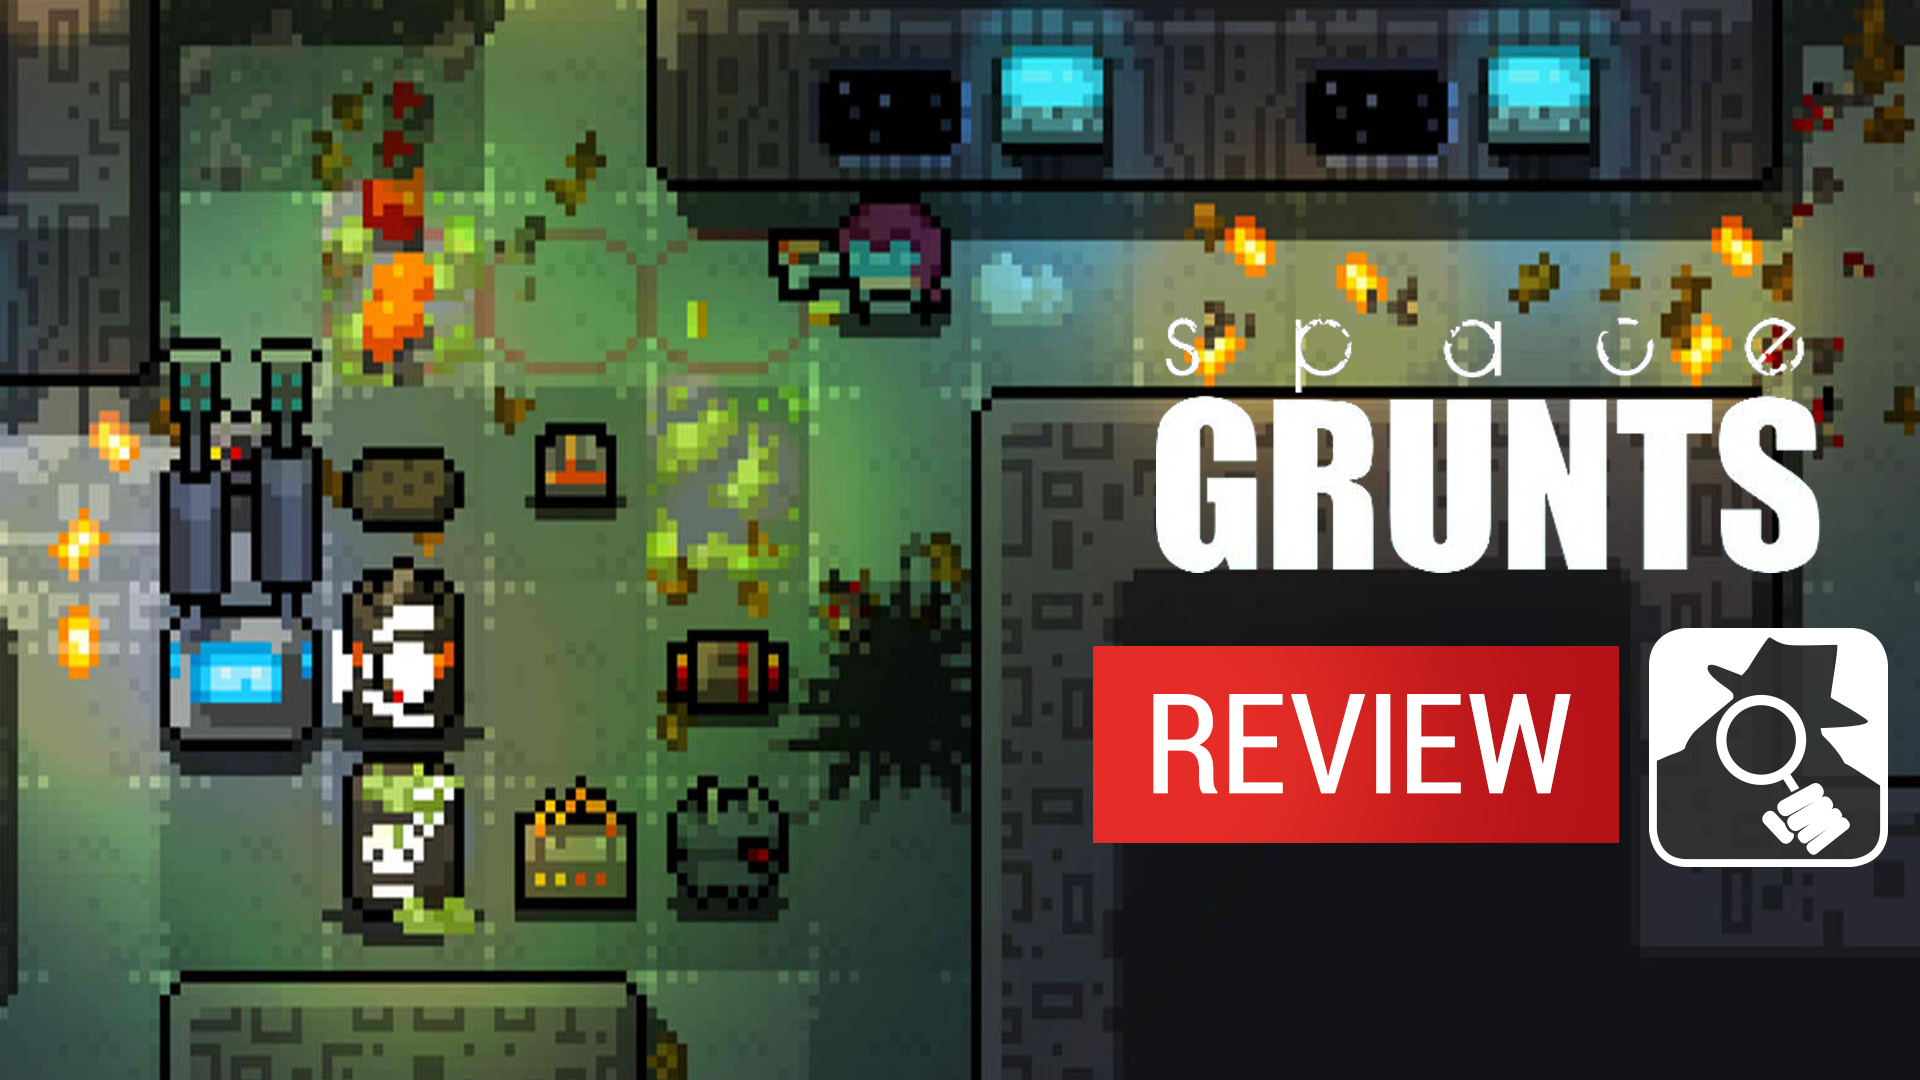 Space Grunts: Video Review